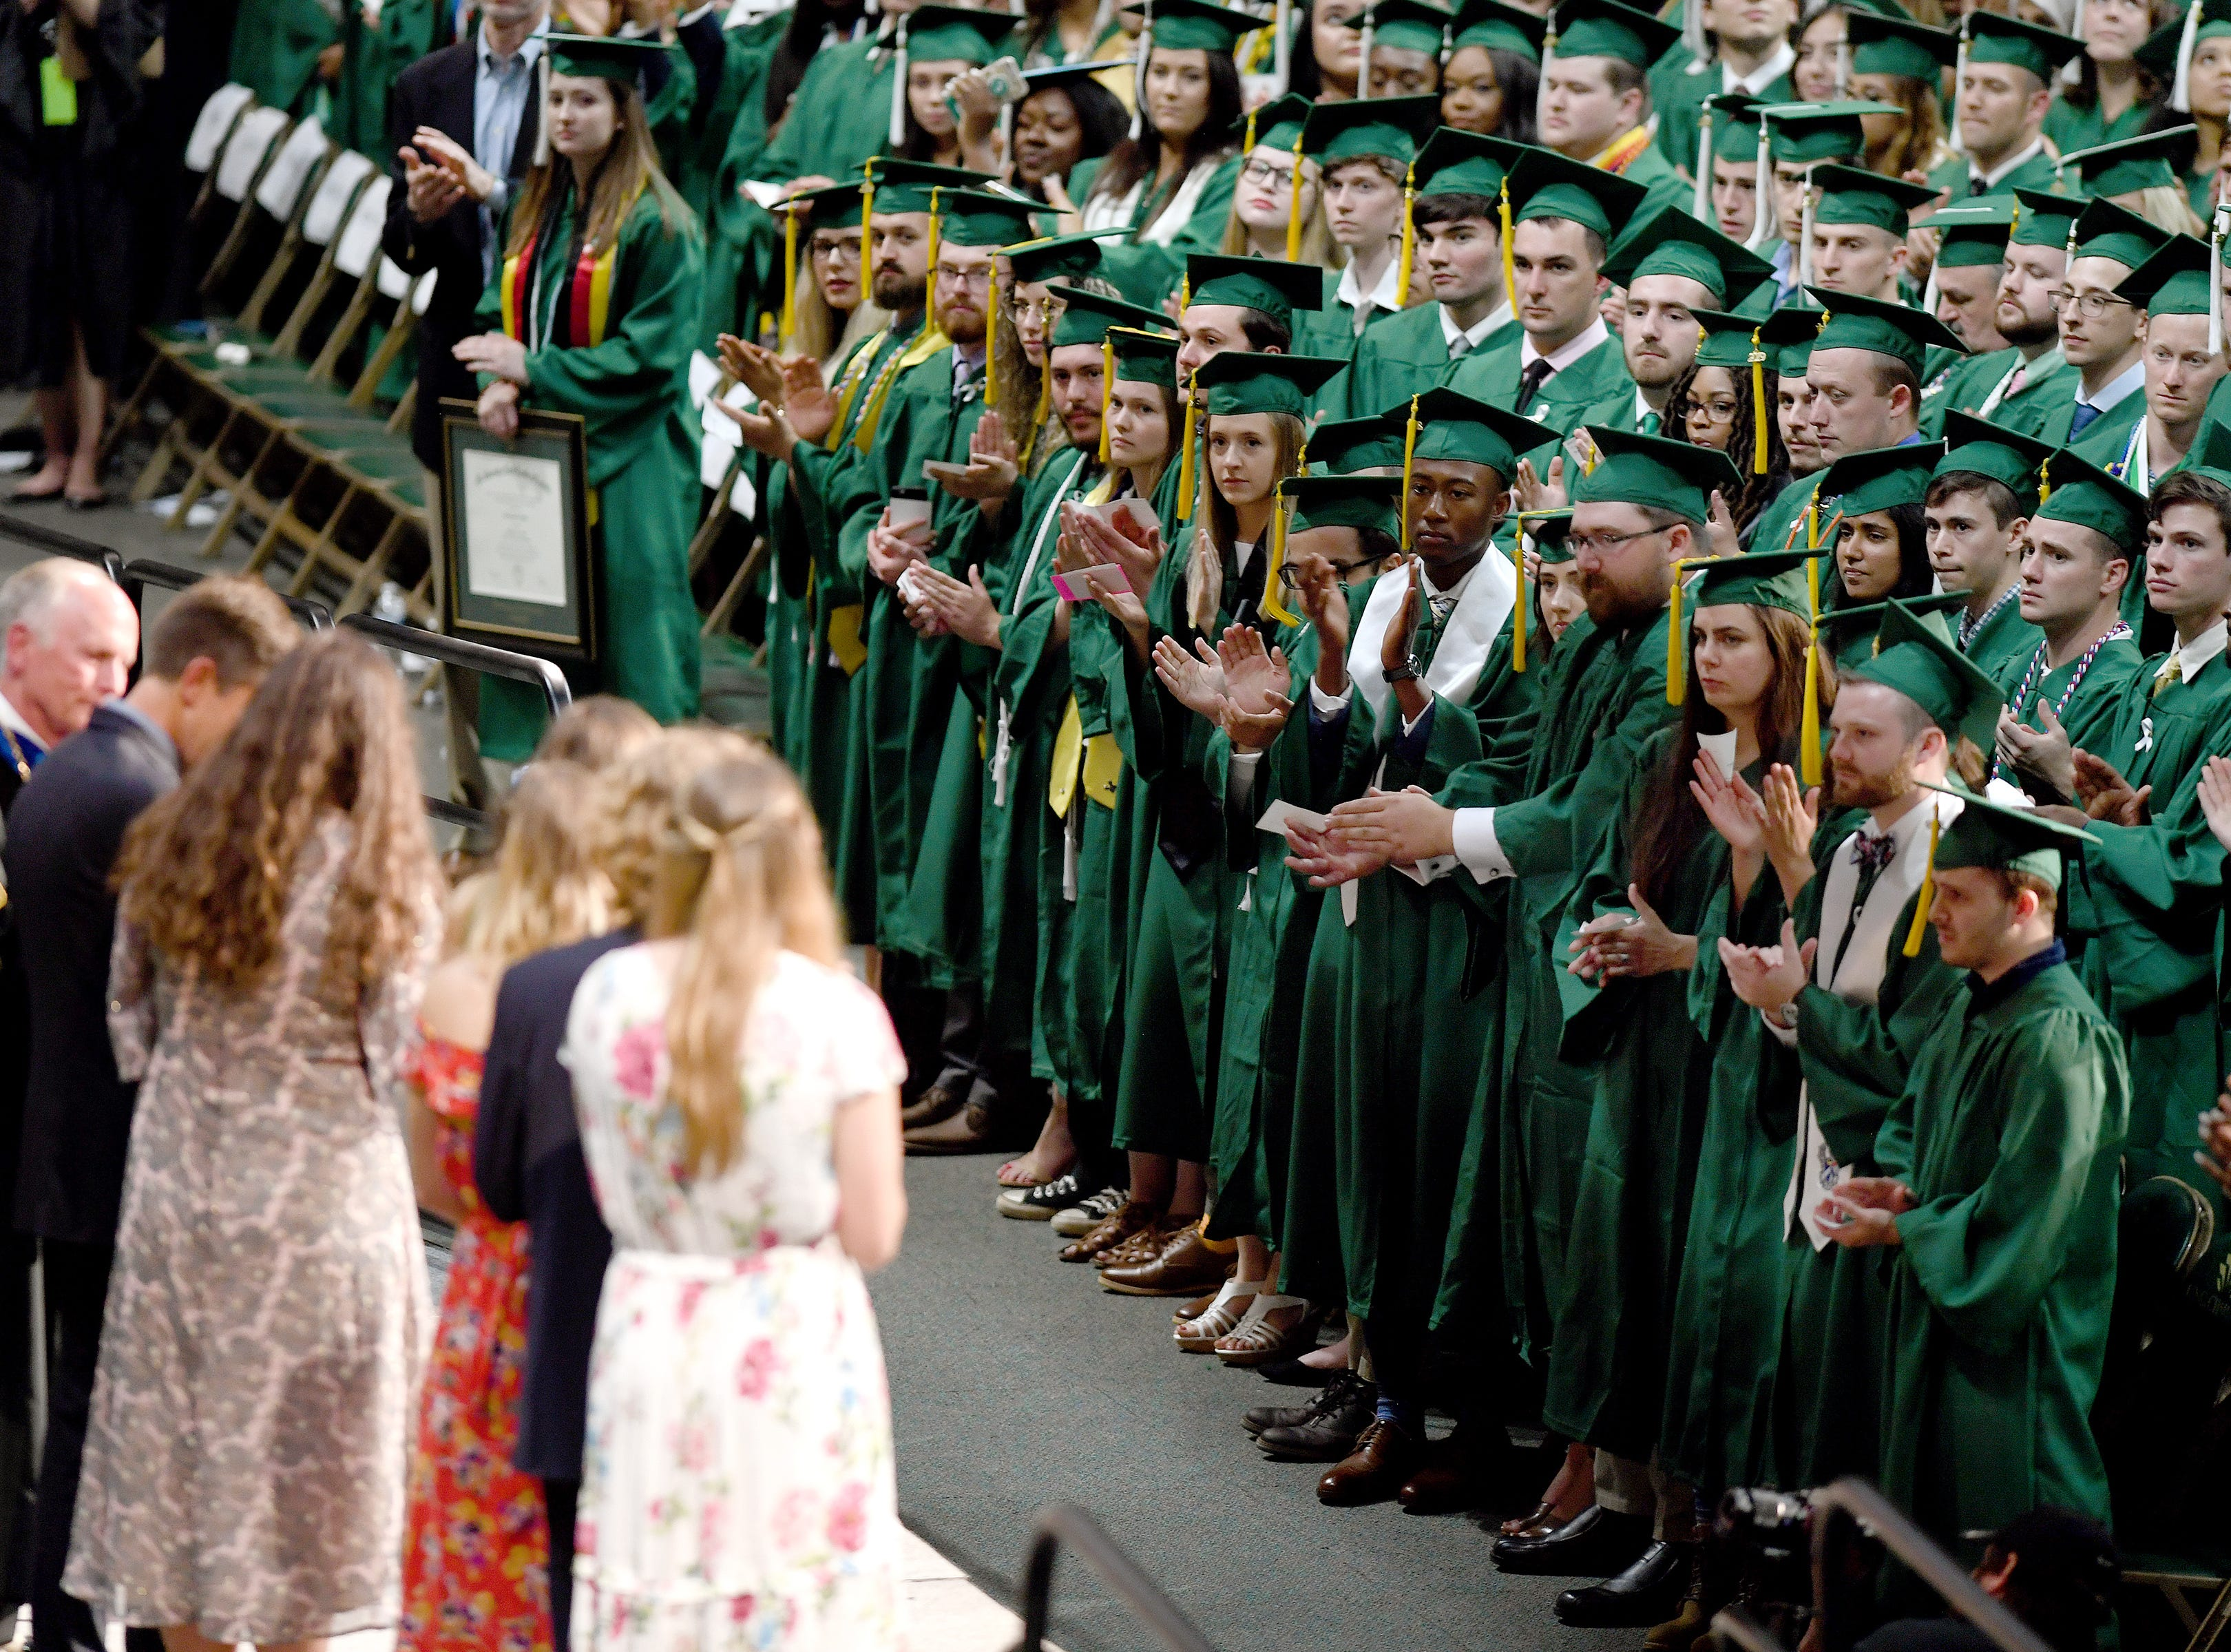 UNC Charlotte graduates applaud and give a standing ovation to Riley Howell's family as he is honored and Howell is awarded a B.A. in Memoriam during the University's Commencement ceremony for the College of Liberal Arts and Sciences in Charlotte on May 11, 2019. Riley Howell was killed in the April 30 shooting at the university.